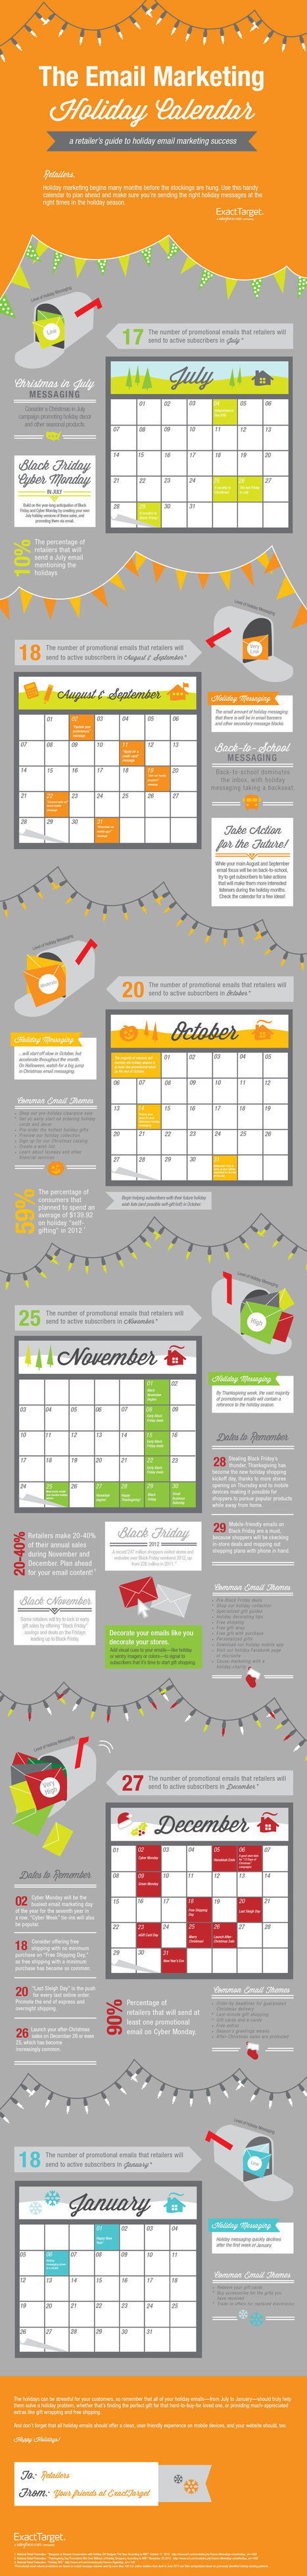 Holidays In August: A Holiday Email Marketing Schedule [Infographic] | Mailing | Scoop.it